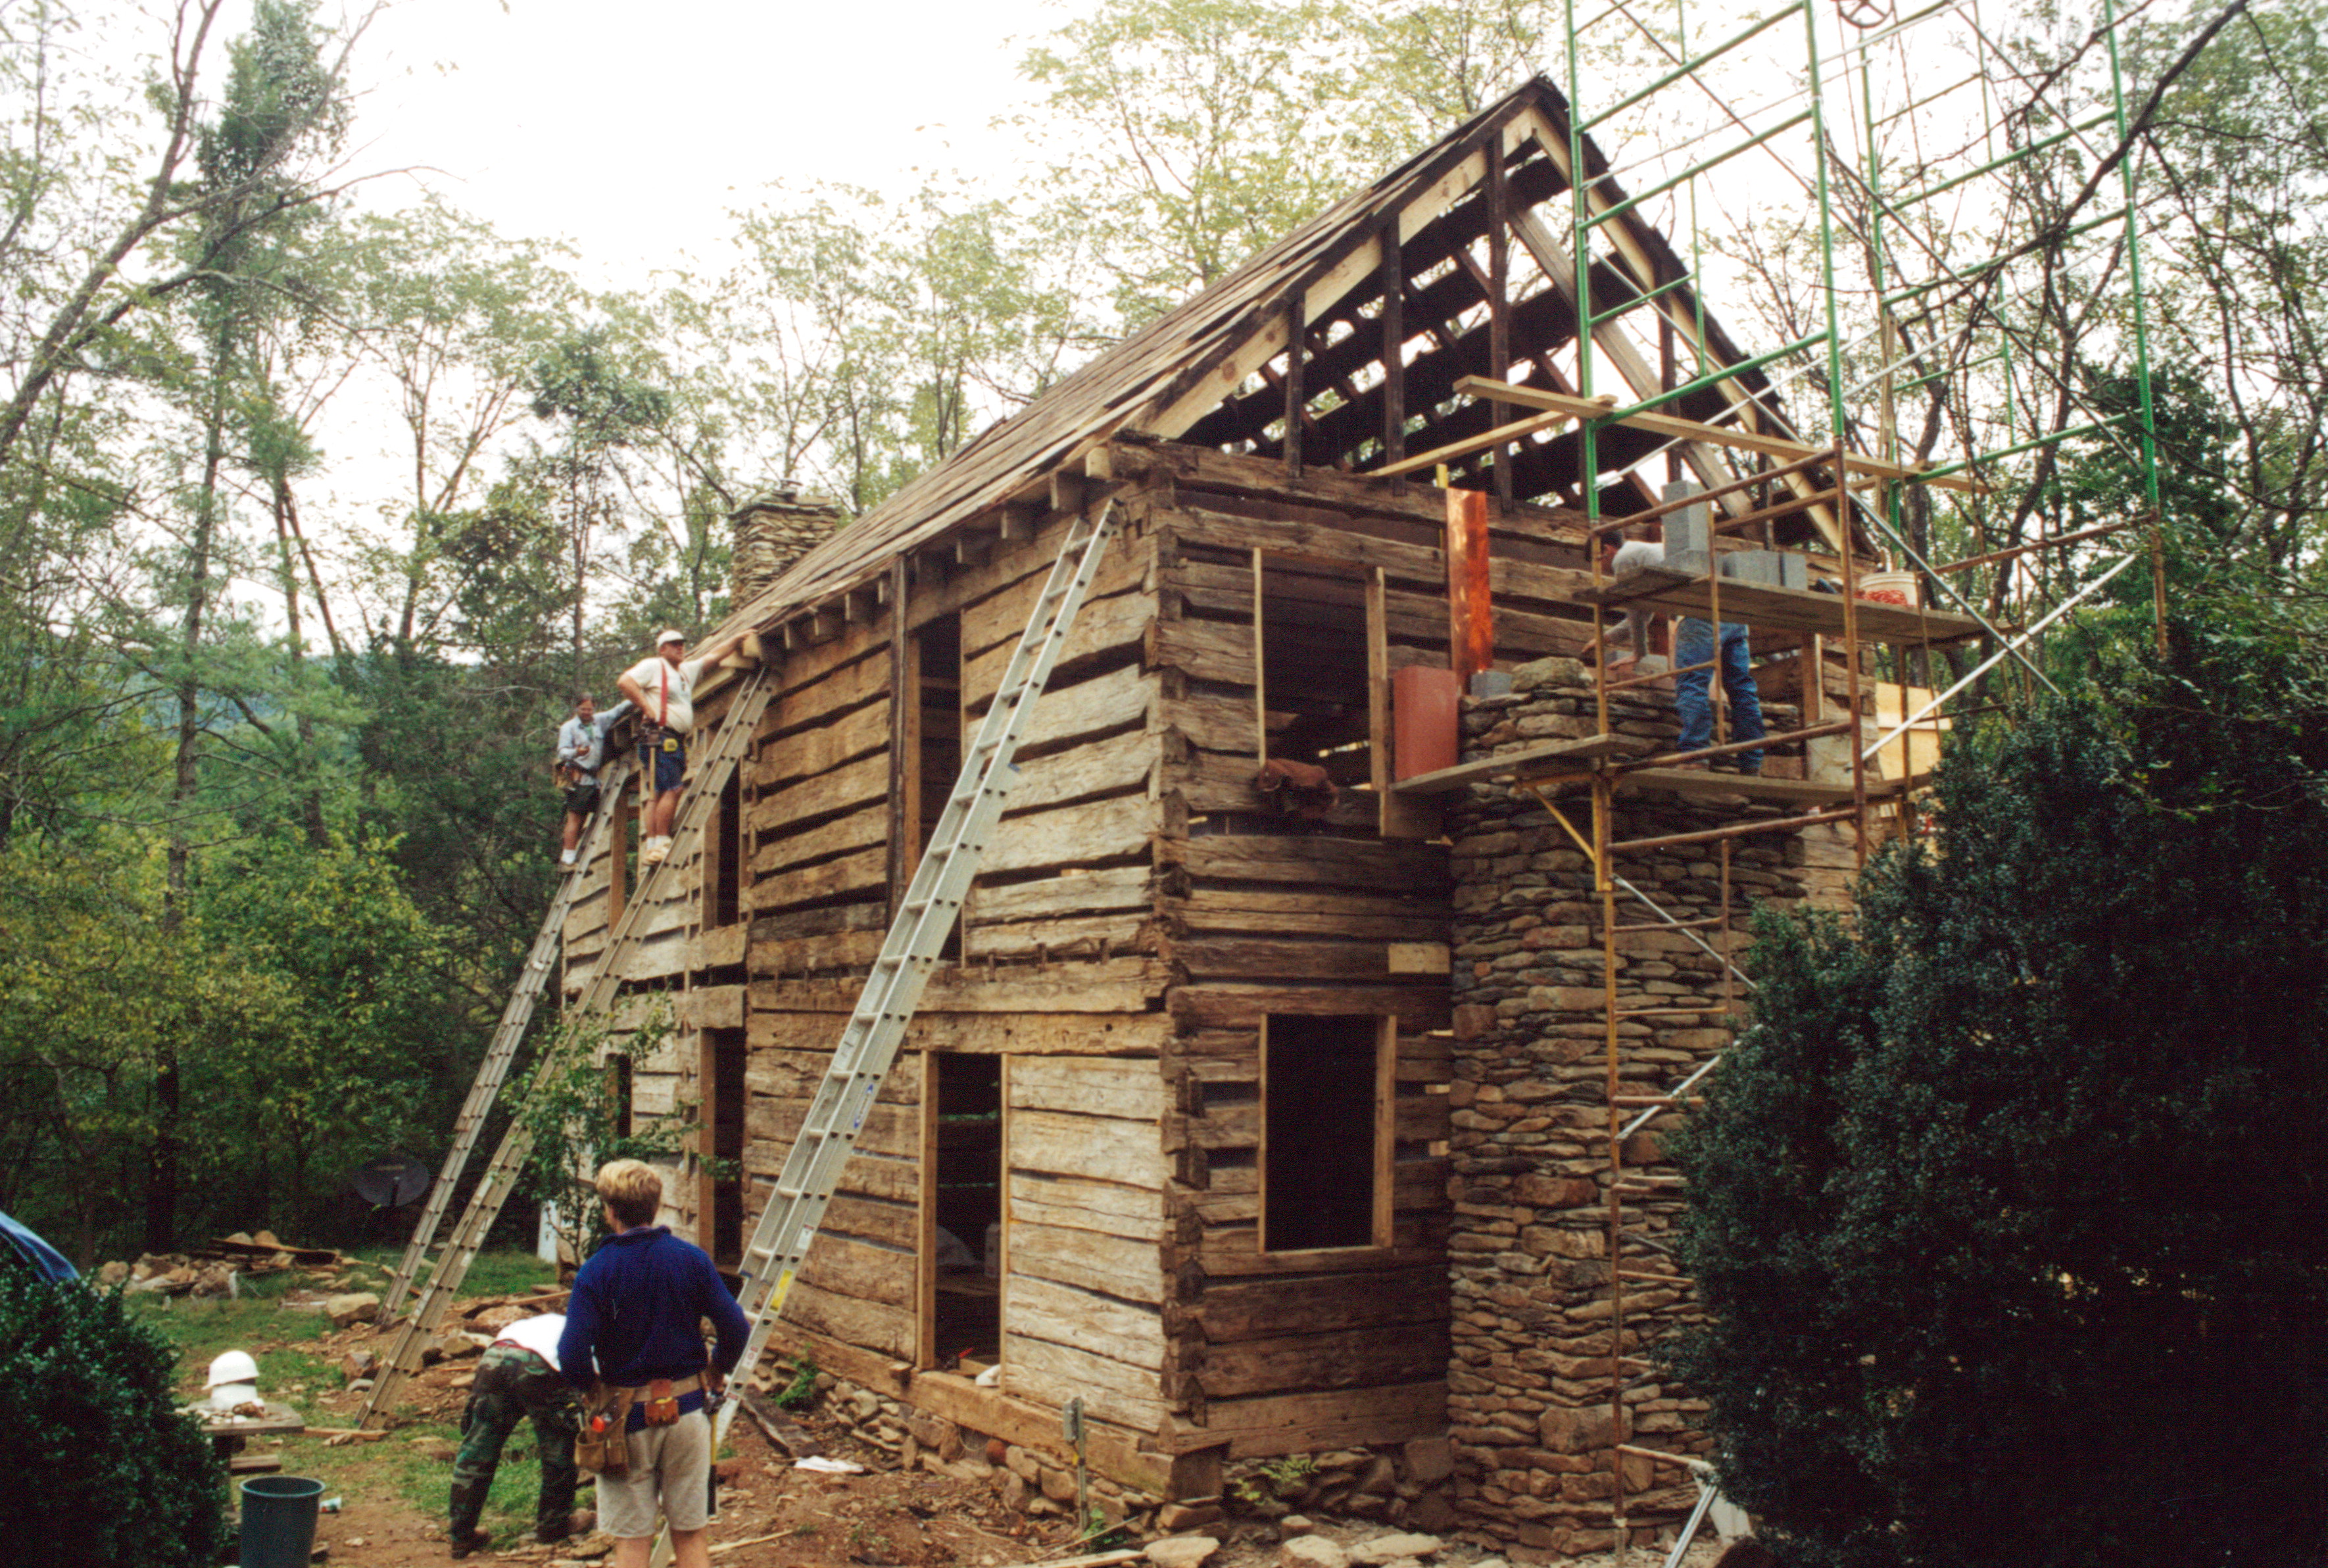 designs homes dma with log basement house design cabins cabin ideas coast stunning home mountain